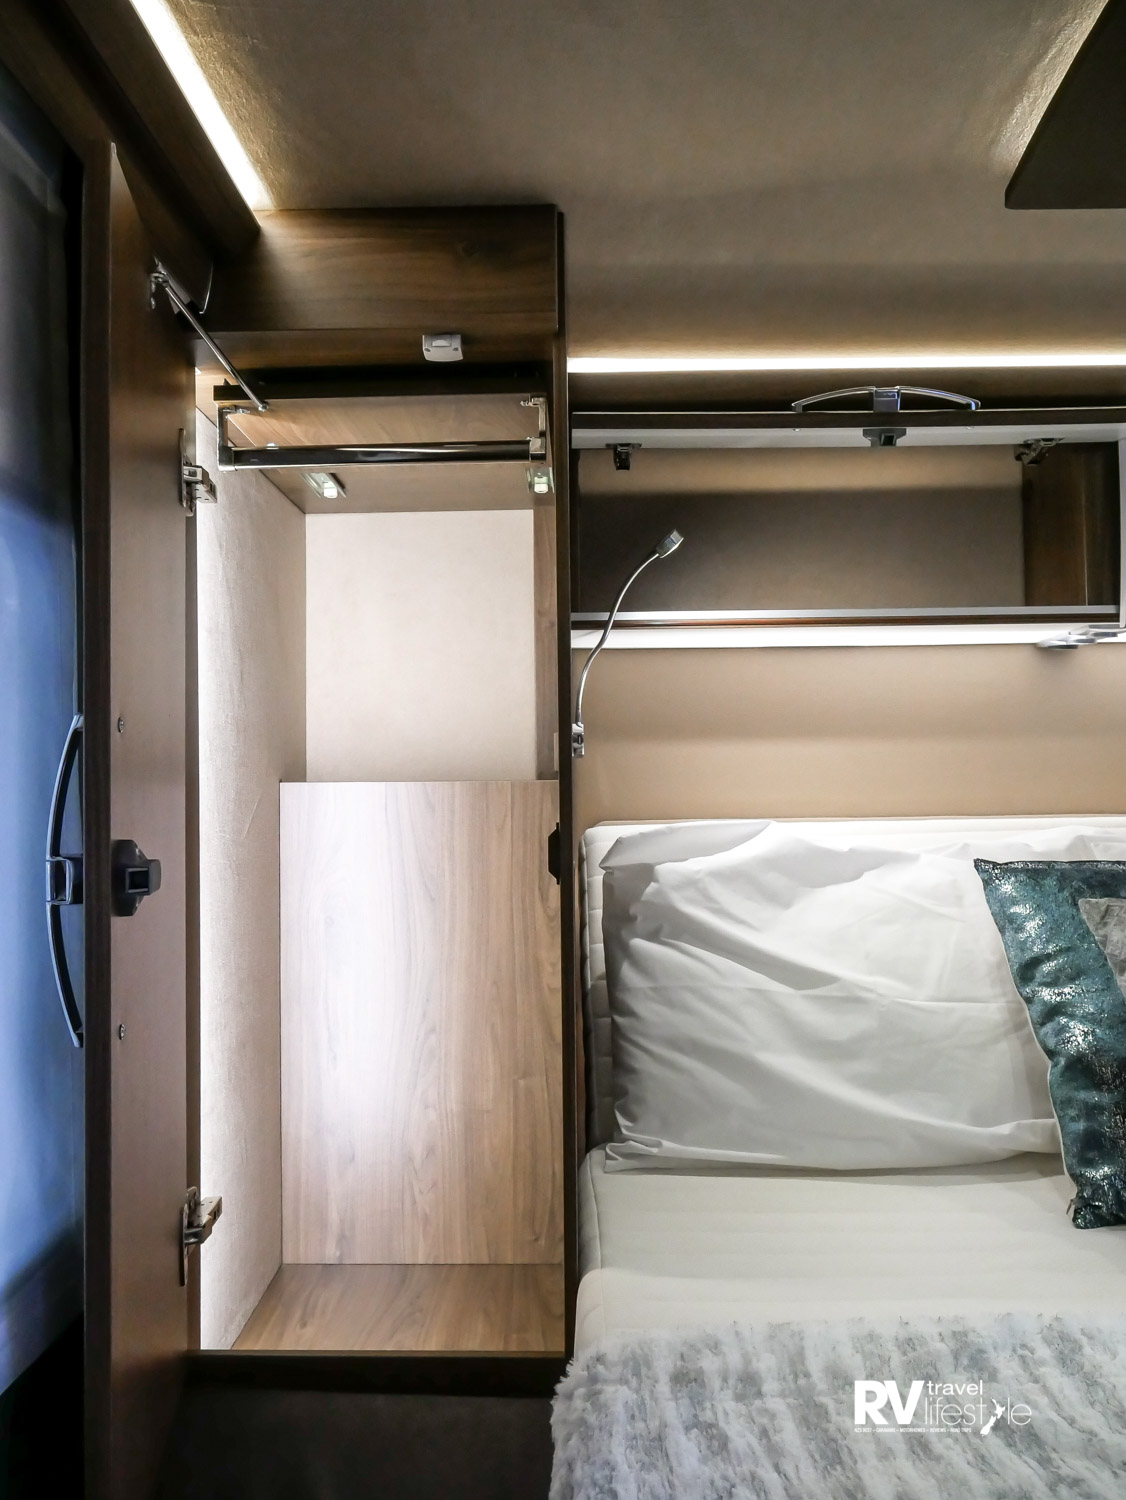 Wardrobes have lighting within; plenty of length, width and depth in this space